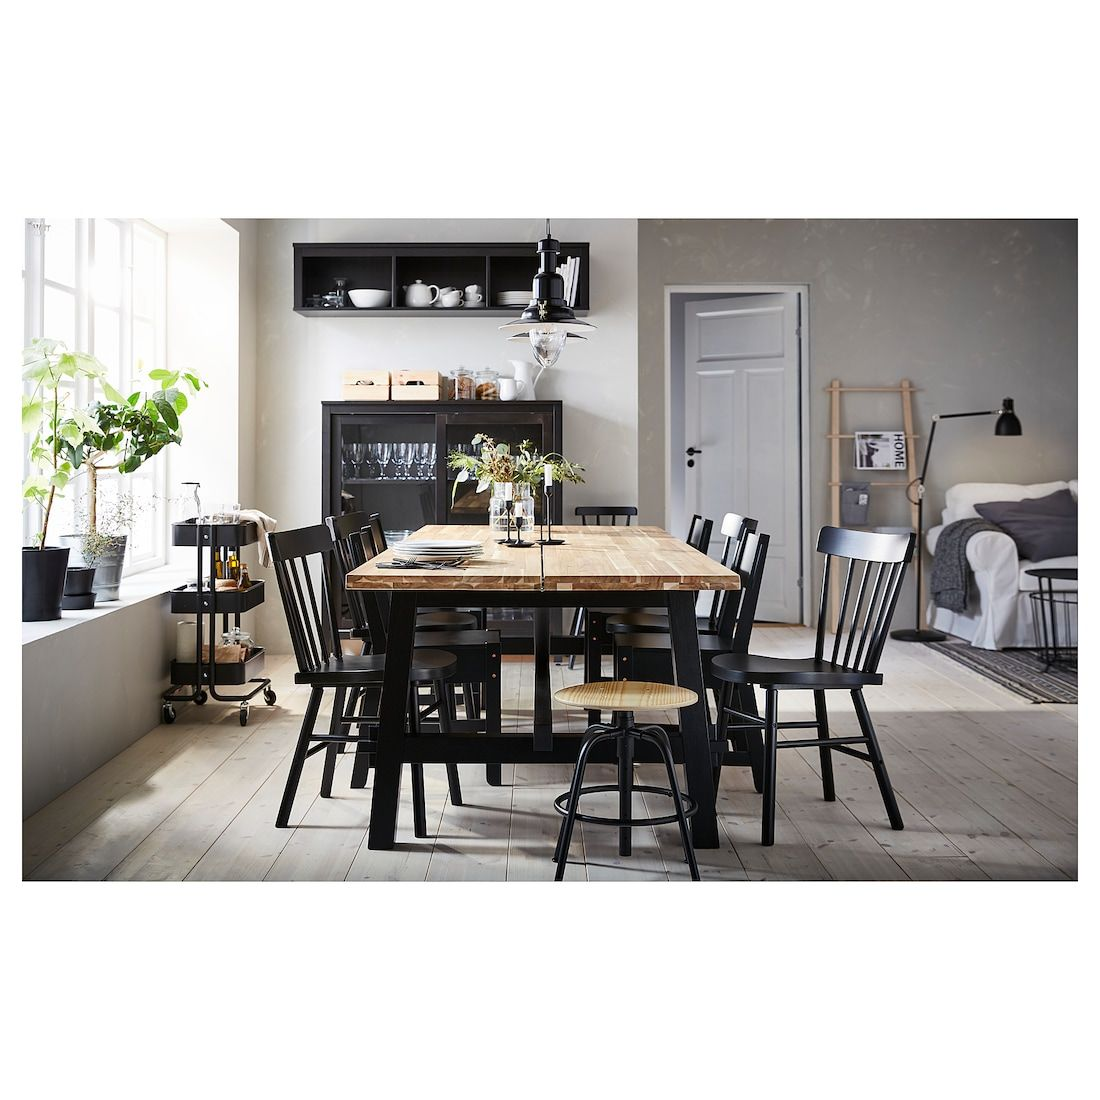 Skogsta Dining Table Acacia 92 1 2x39 3 8 235x100 Cm With Images Ikea Dining Room Ikea Dining Dining Room Design